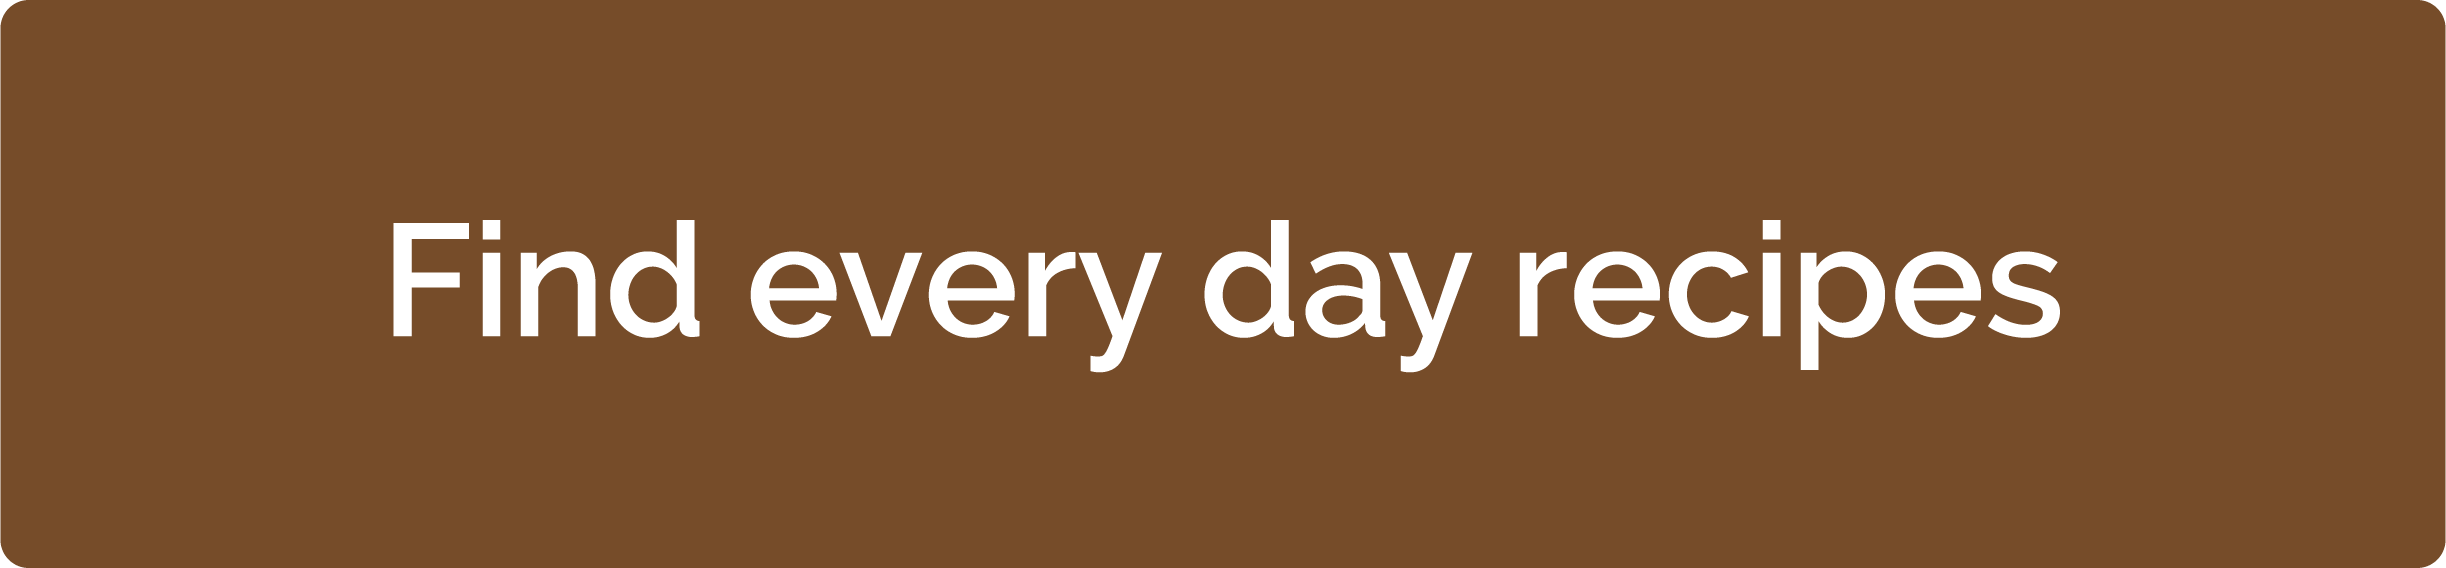 find-everyday-recipes-button.png